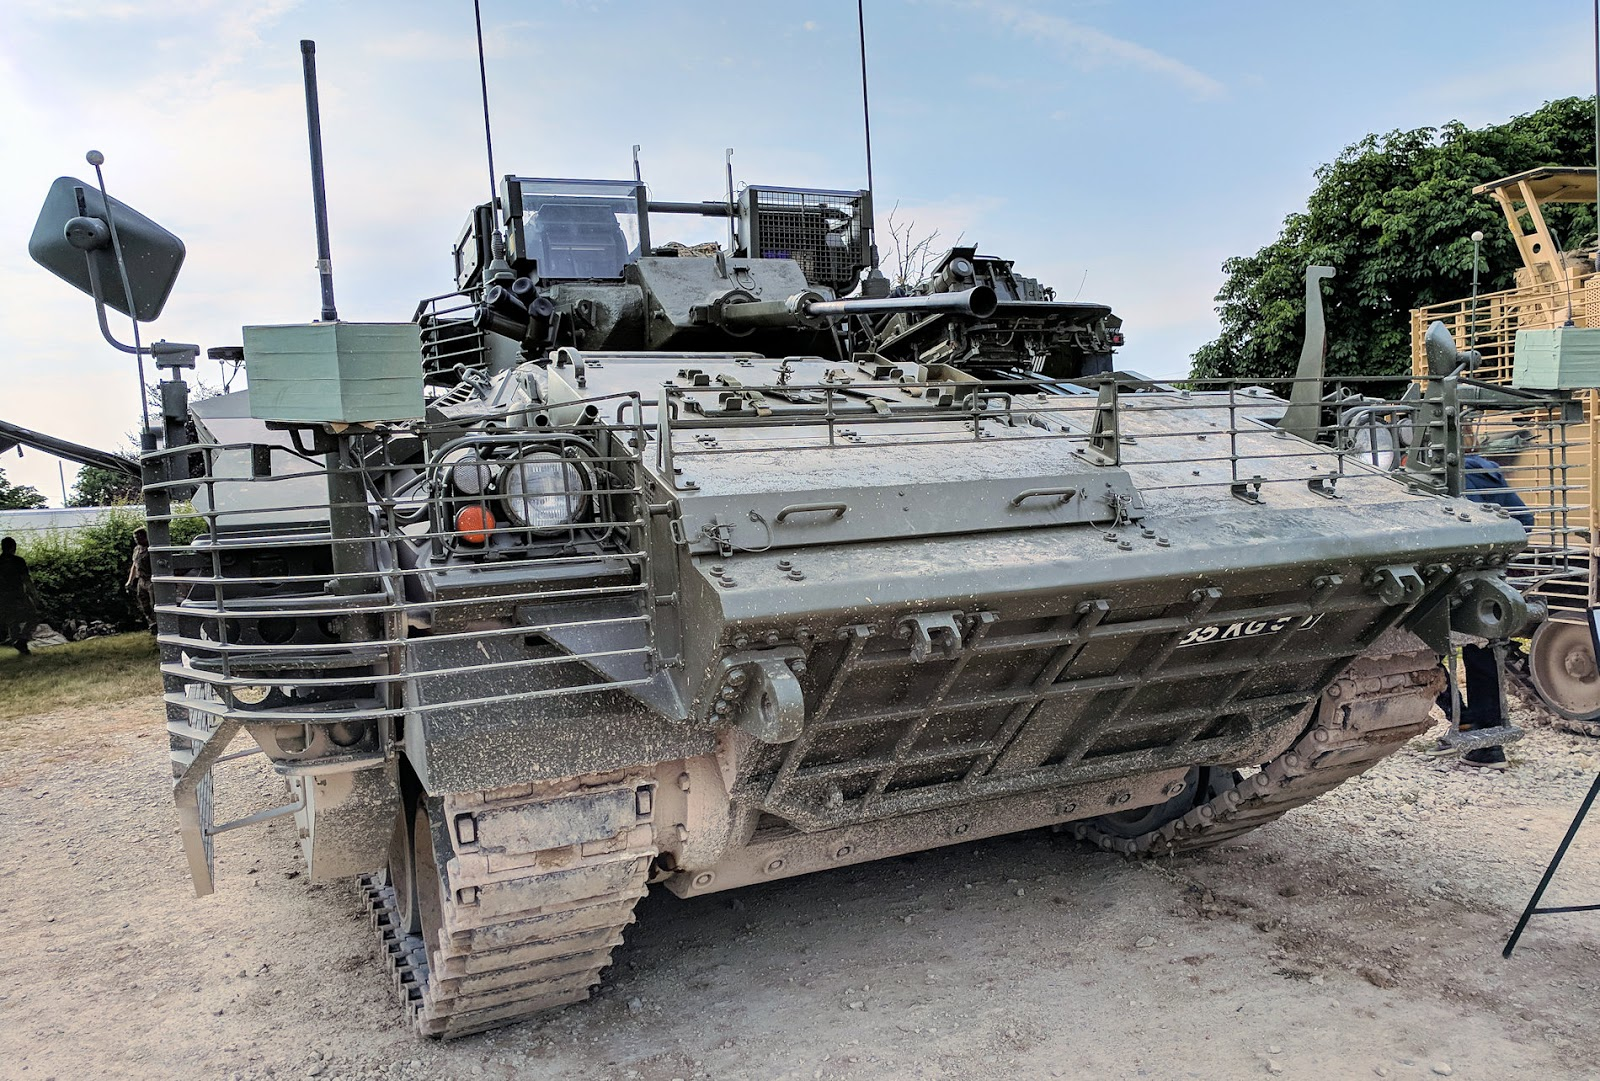 a7c3ed021727 It has the speed to keep up with the Challenger II in battle and firepower  and some limited armour. The HEAT shields on the sides and reactive armour  act as ...